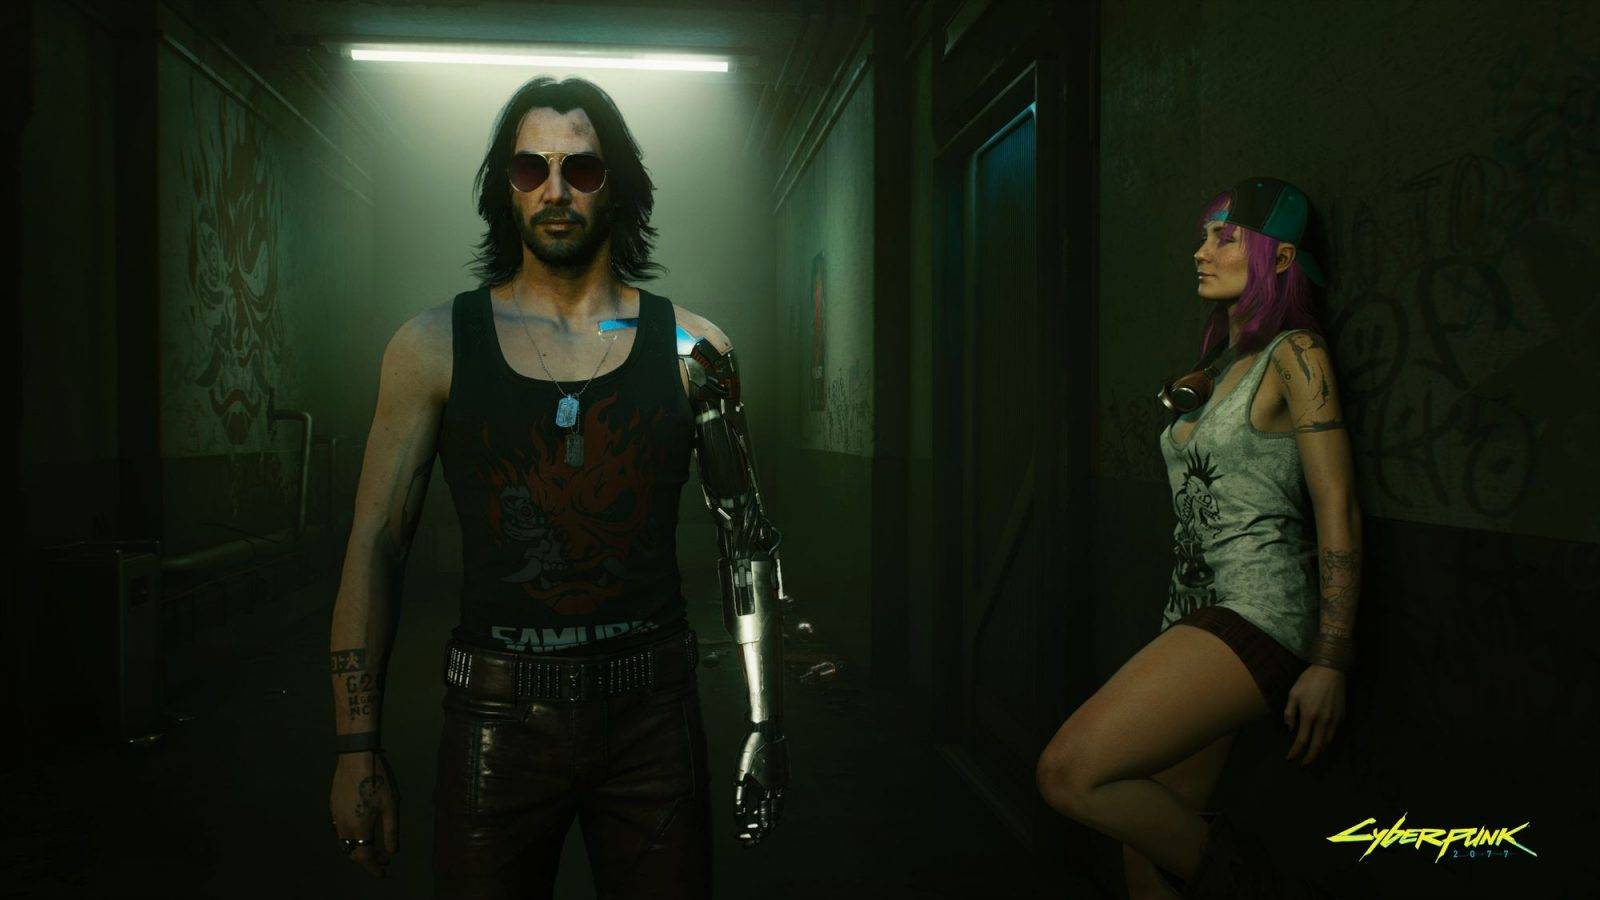 Cyberpunk 2077 Review: Console Version Seems Full of Bugs, but Storyline is Great